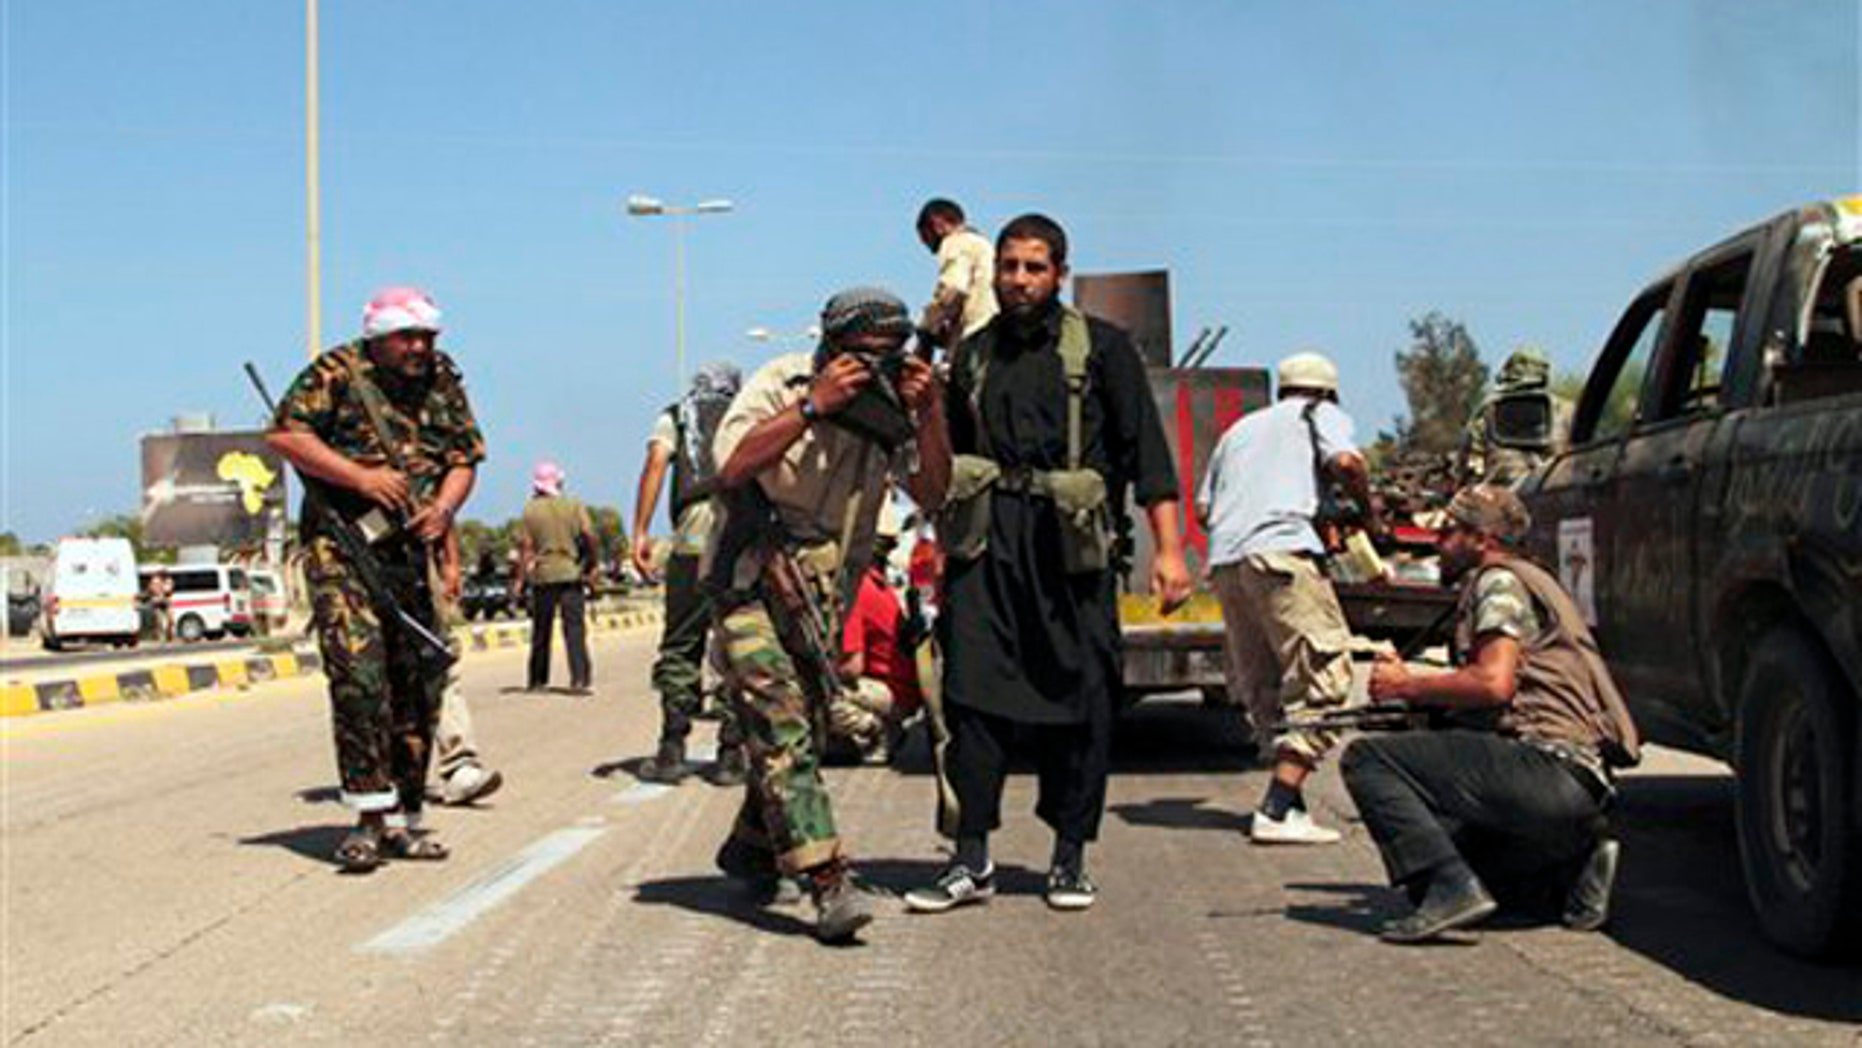 Revolutionary fighters take cover from heavy artillery, rocket and missile counter-attacks launched by Qaddafi loyalists in Sirte, Libya, Saturday, Sept. 24, 2011